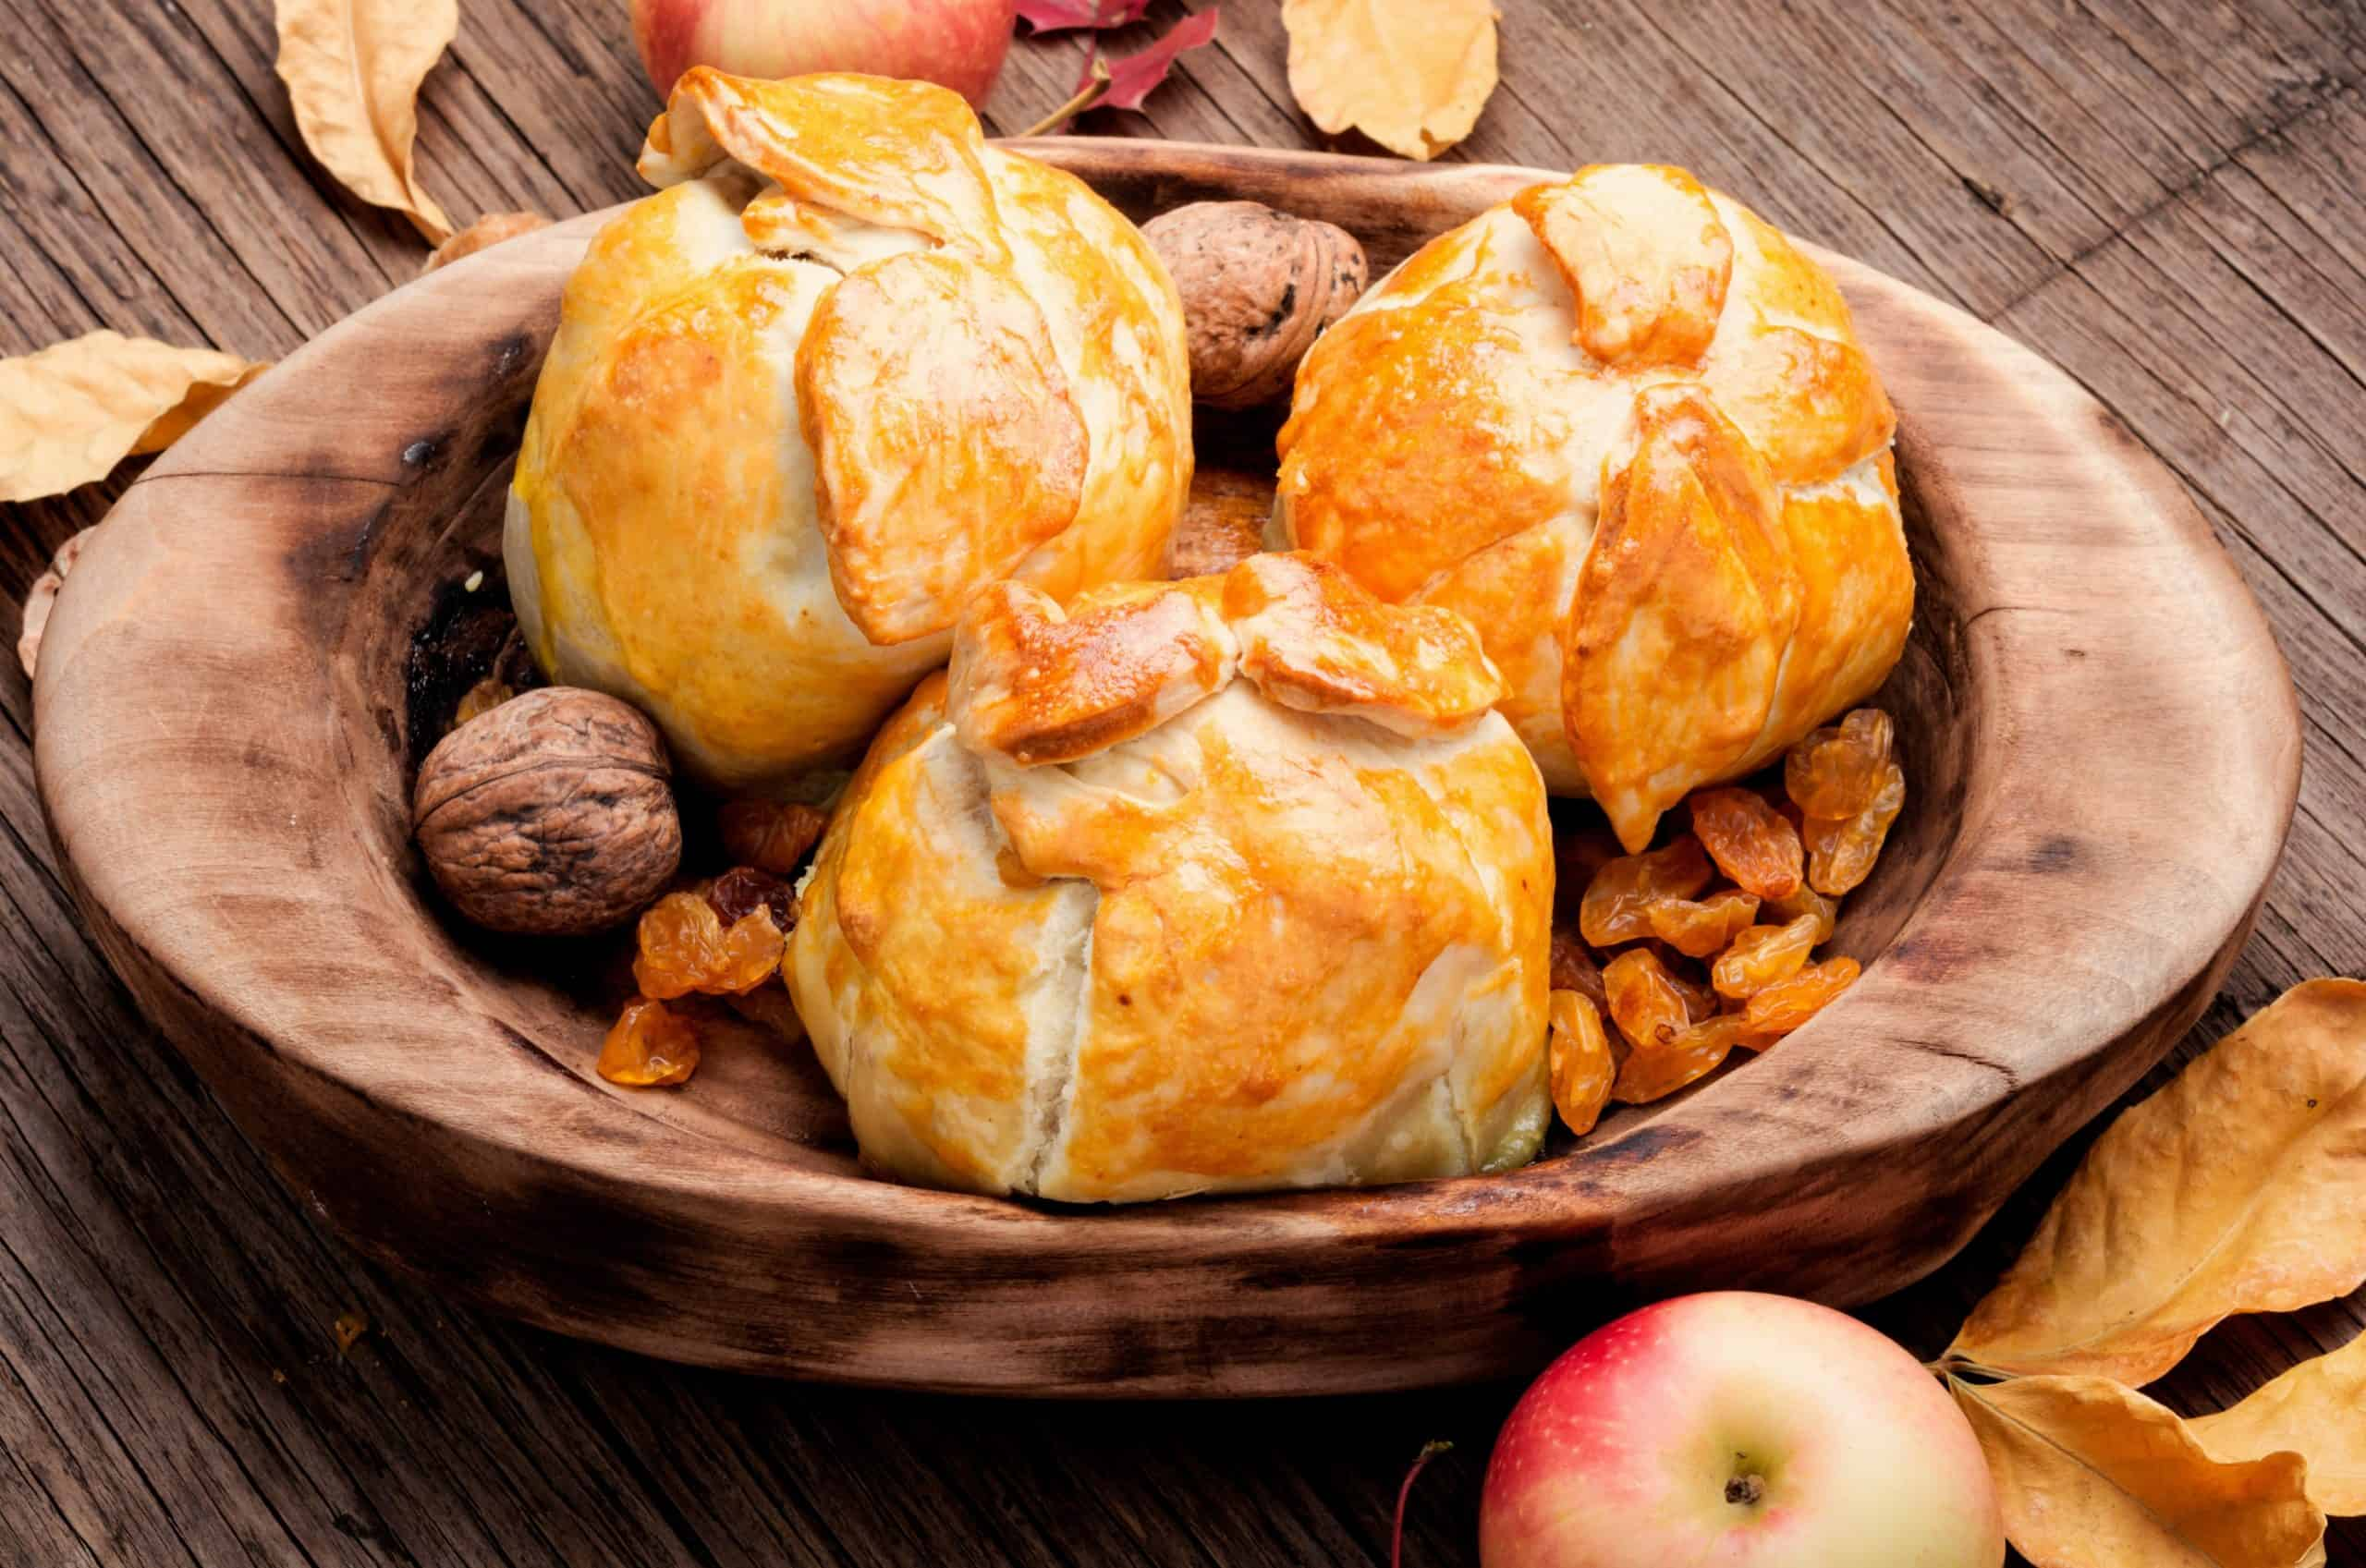 Level Up Snack Time with This Baked Apple Dumplings Recipe